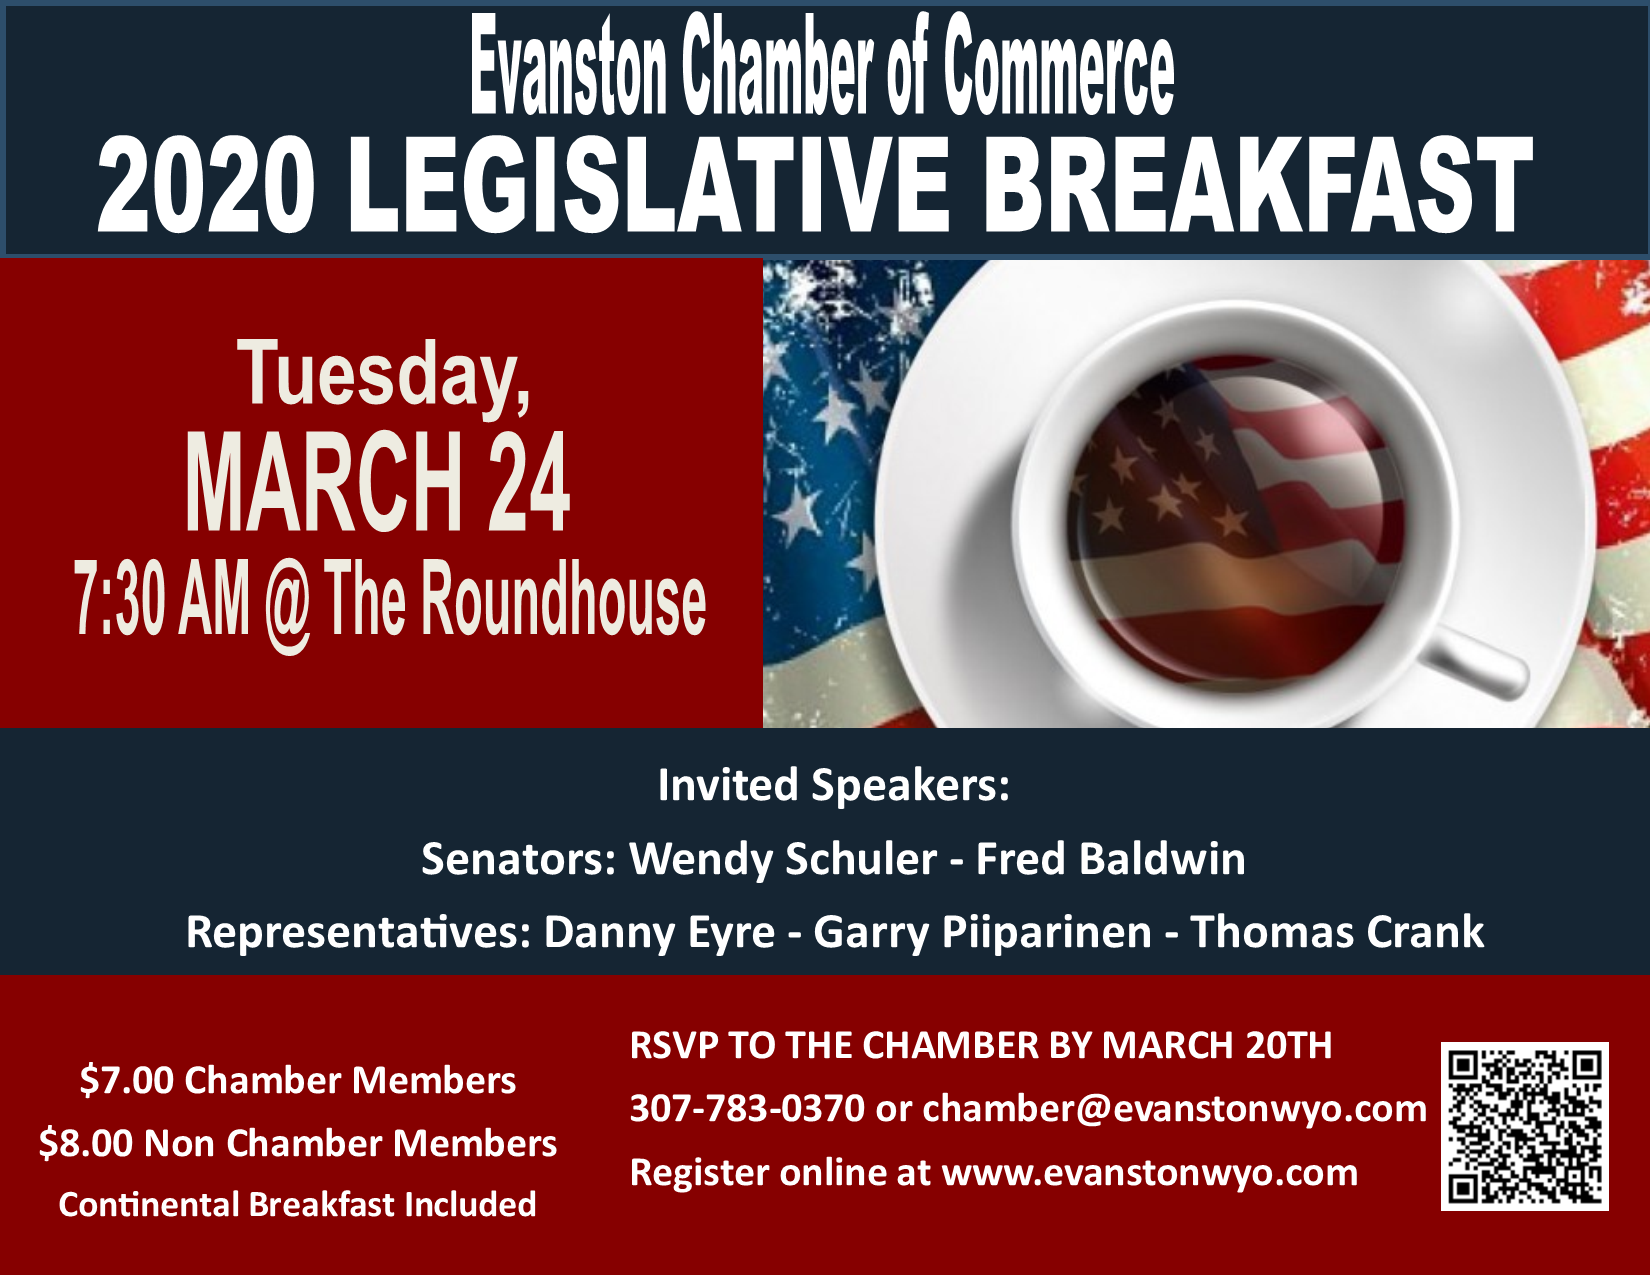 Legislative Breakfast, Chamber of Commerce, Wyoming Legislature